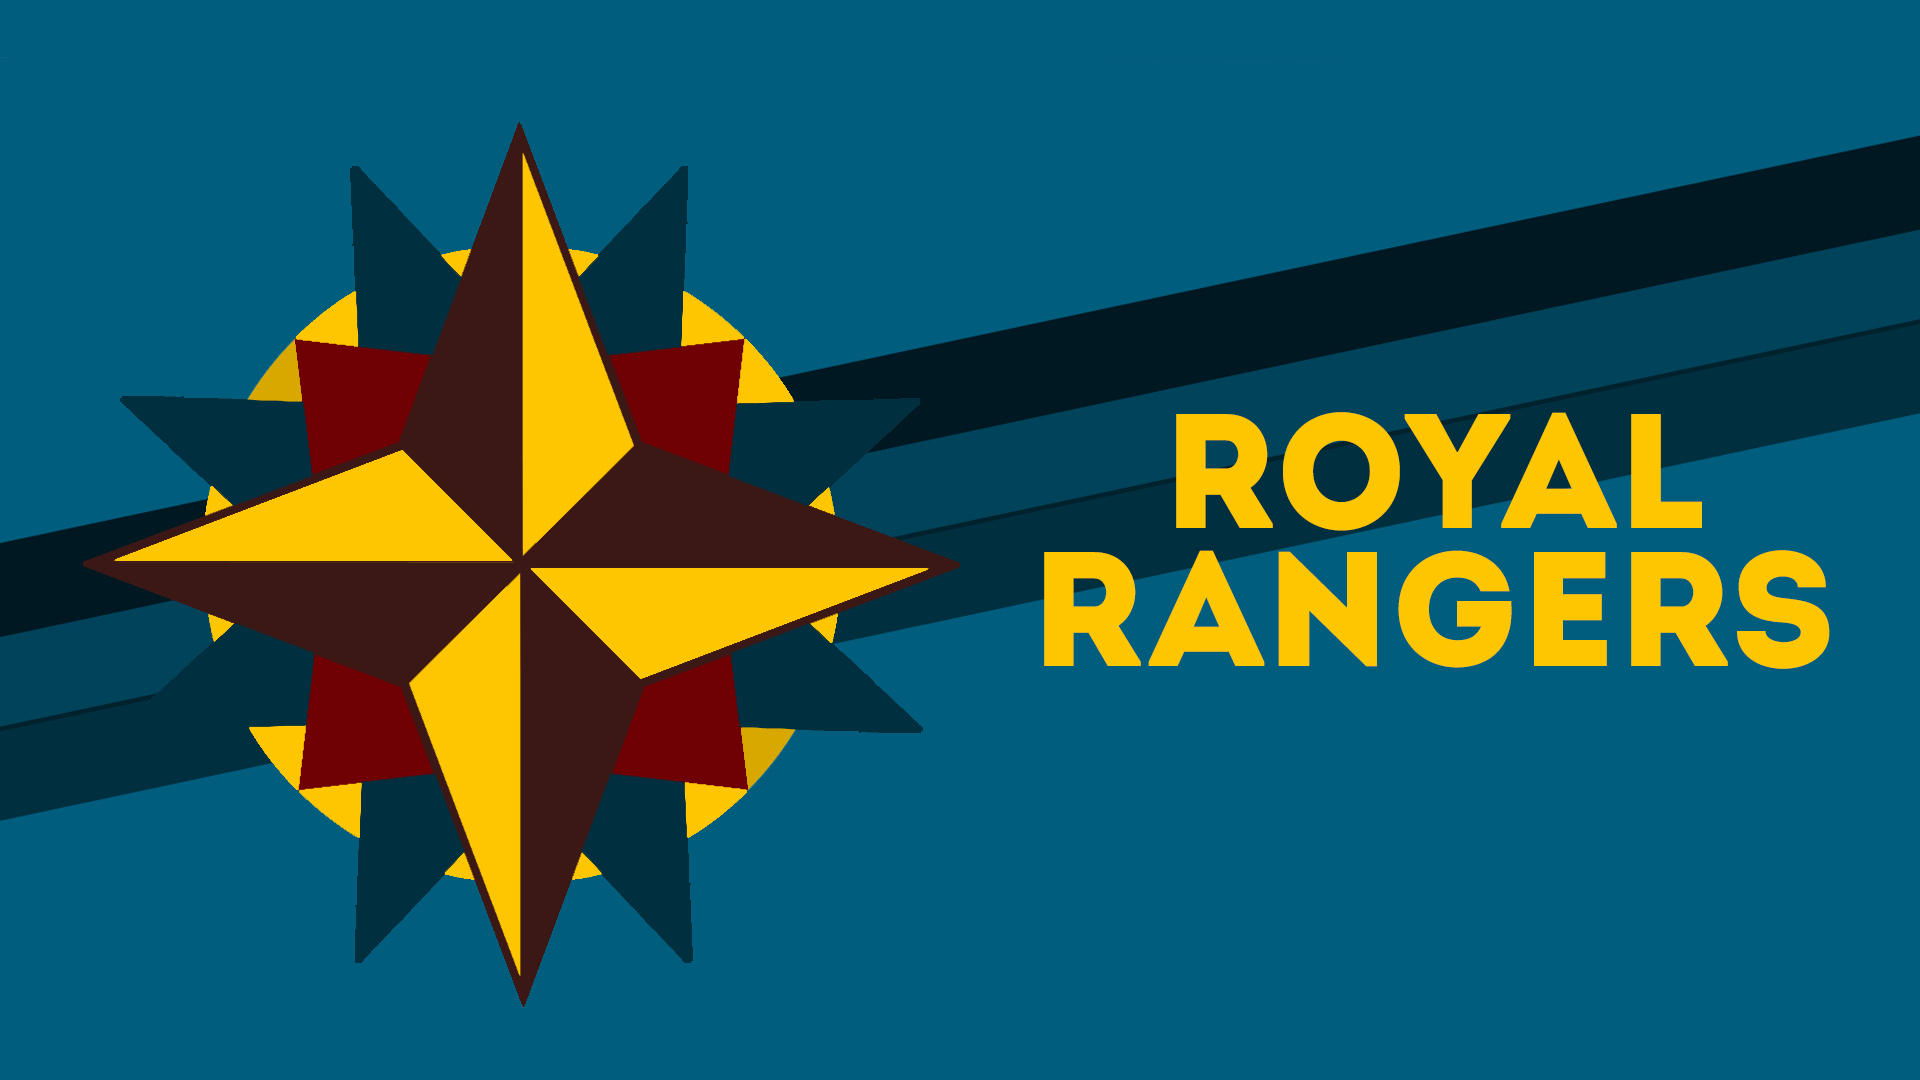 Royal Rangers - A weekly ministry for elementary school boys on Wednesday nights, with a focus on both fun outdoors and raising the next generation of Christian men.